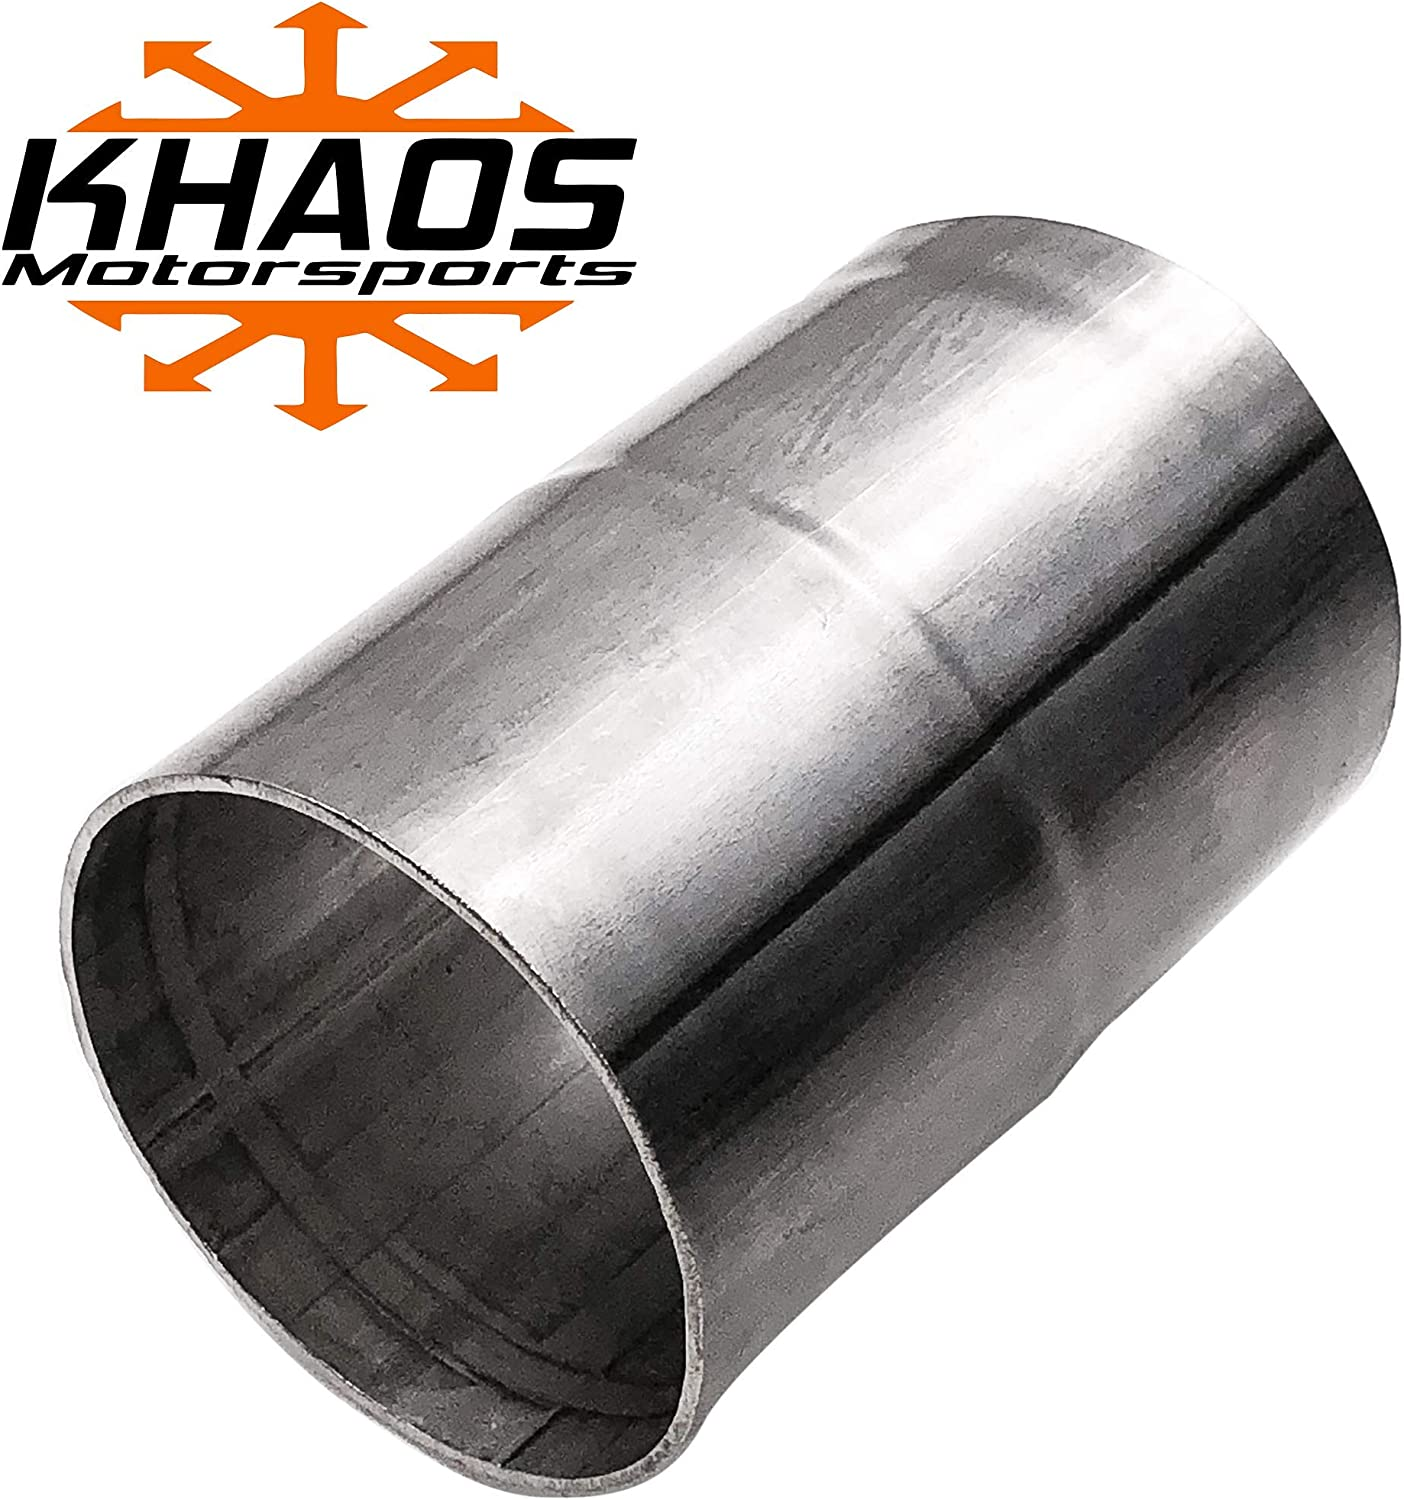 """3/"""" ID to 2.5/"""" OD exhaust reducer adapter coupler pipe 304 stainless steel"""